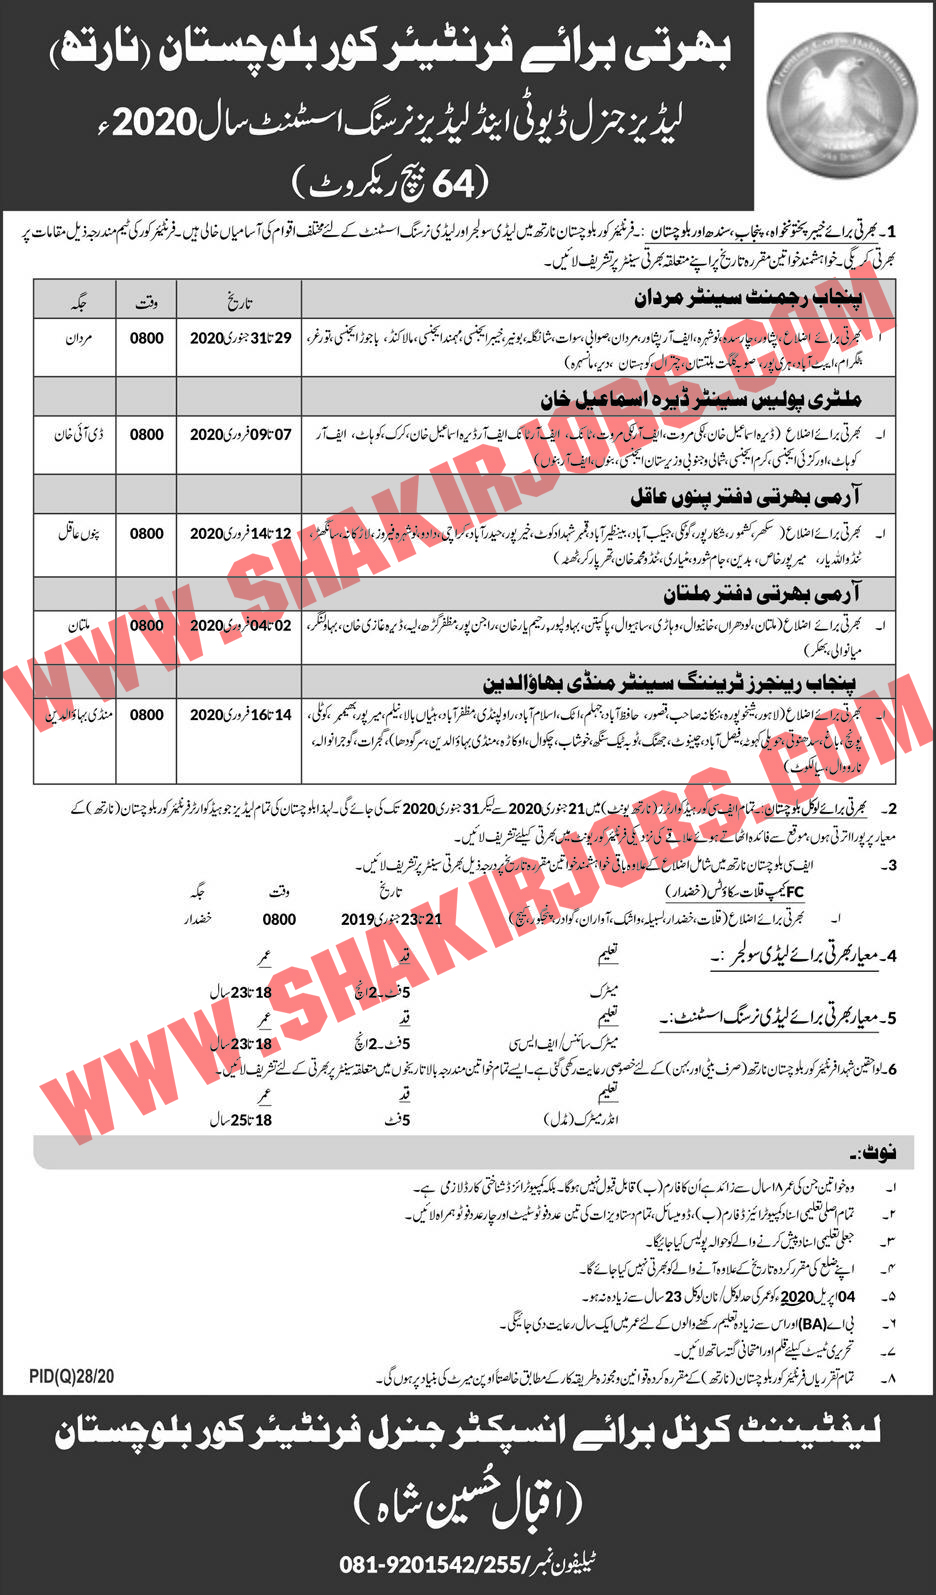 fc jobs 2020,fc balochistan,fc jobs,fc frontier corps jobs 2020,fc balochistan jobs,fc balochistan new jobs 2020,fc jobs 2020 balochistan,frontier corps balochistan jobs 2020,frontier corps fc jobs,frontier corps jobs 2020,fc balochistan jobs 2020,frontier corps jobs,fc balochistan south jobs 2020,fc balochistan north jobs 2020